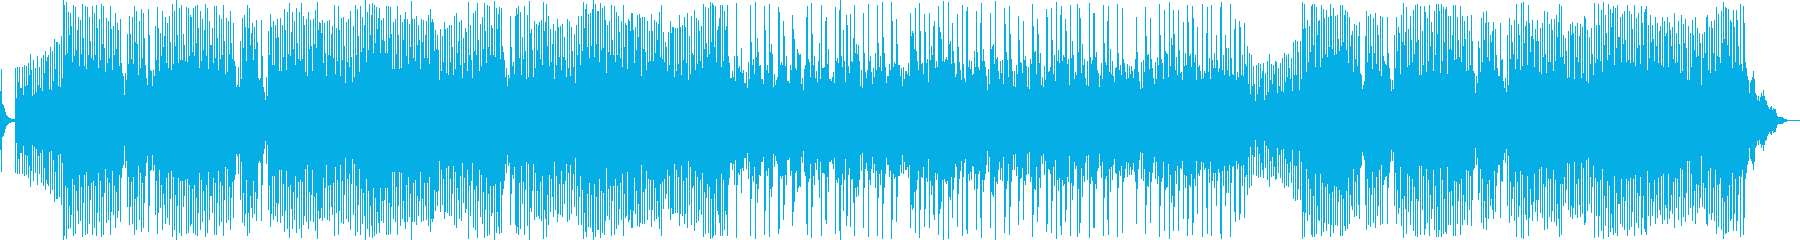 Little dog's waltz / Chopin (Japanese style)'s reproduced waveform